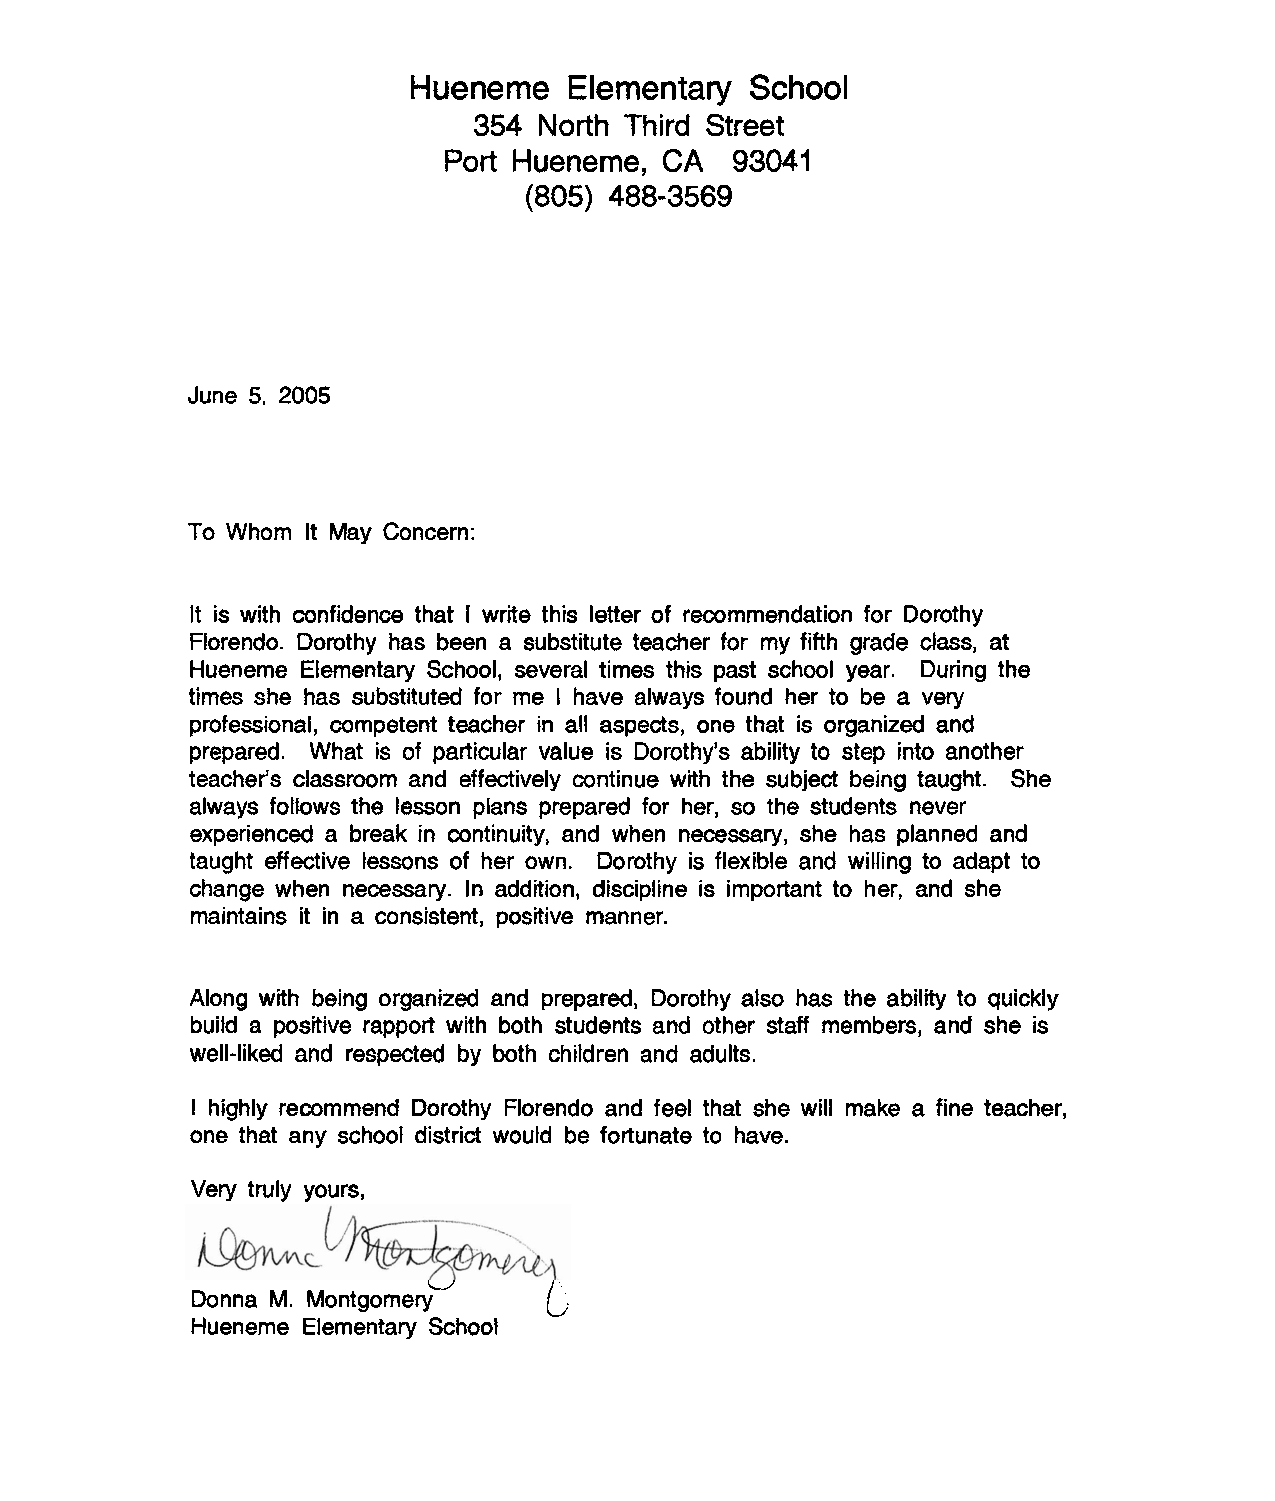 Recommendation Letter Sample For Teacher From Student - http://www ...